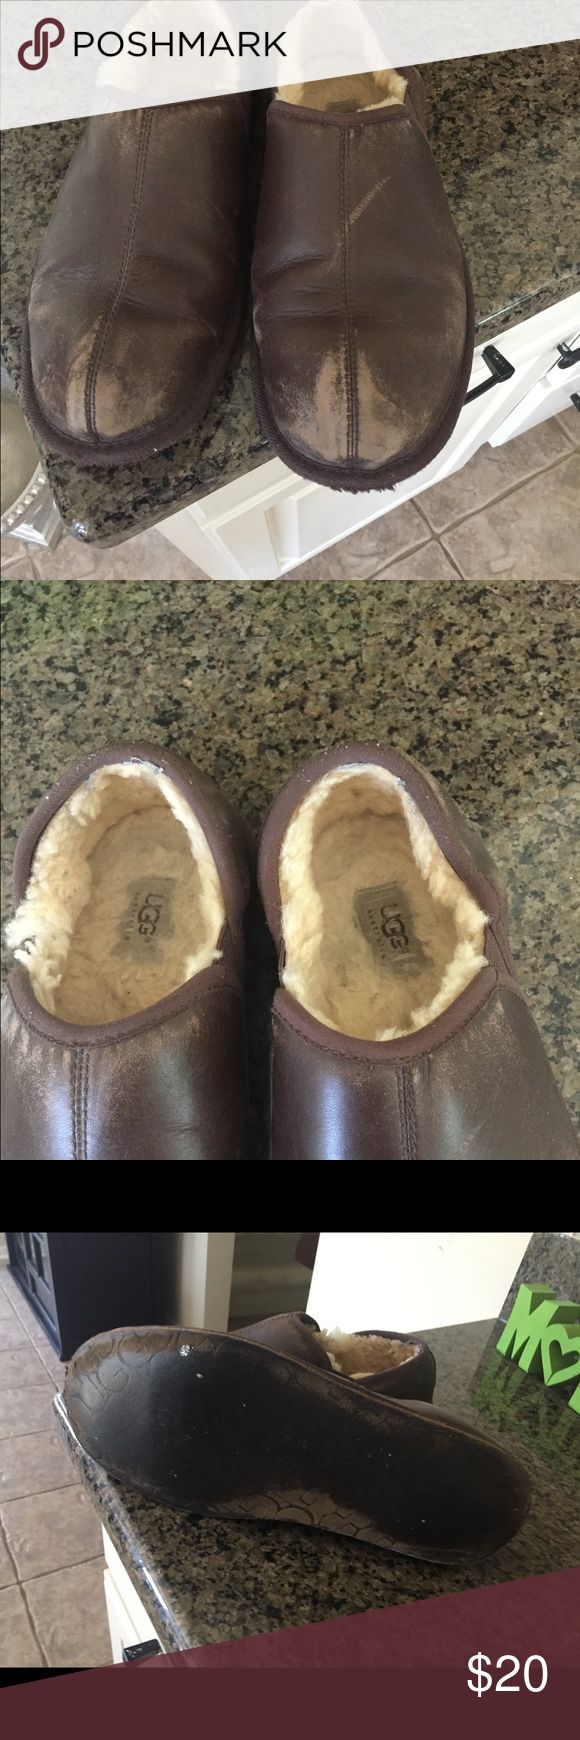 Men's Ugg Slippers Worn men's Ugg Slippers Shoes